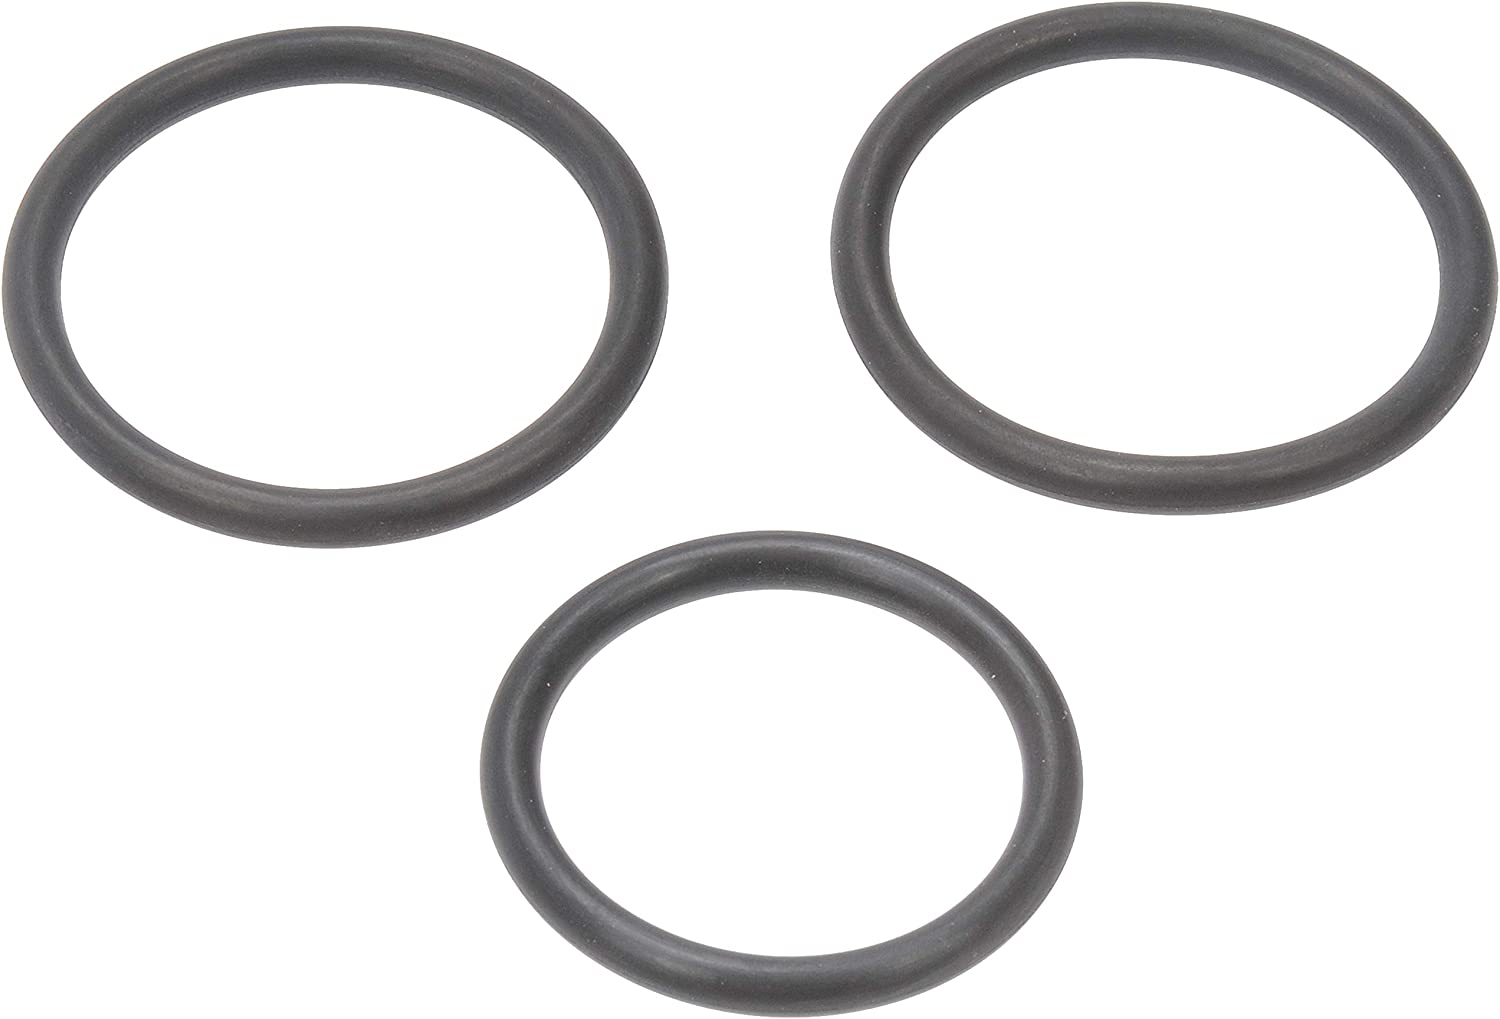 Engine Coolant Recovery Tank Seal Diesel Motorcraft Rts 1073 Auto Parts Accessories Car Truck Cooling Systems